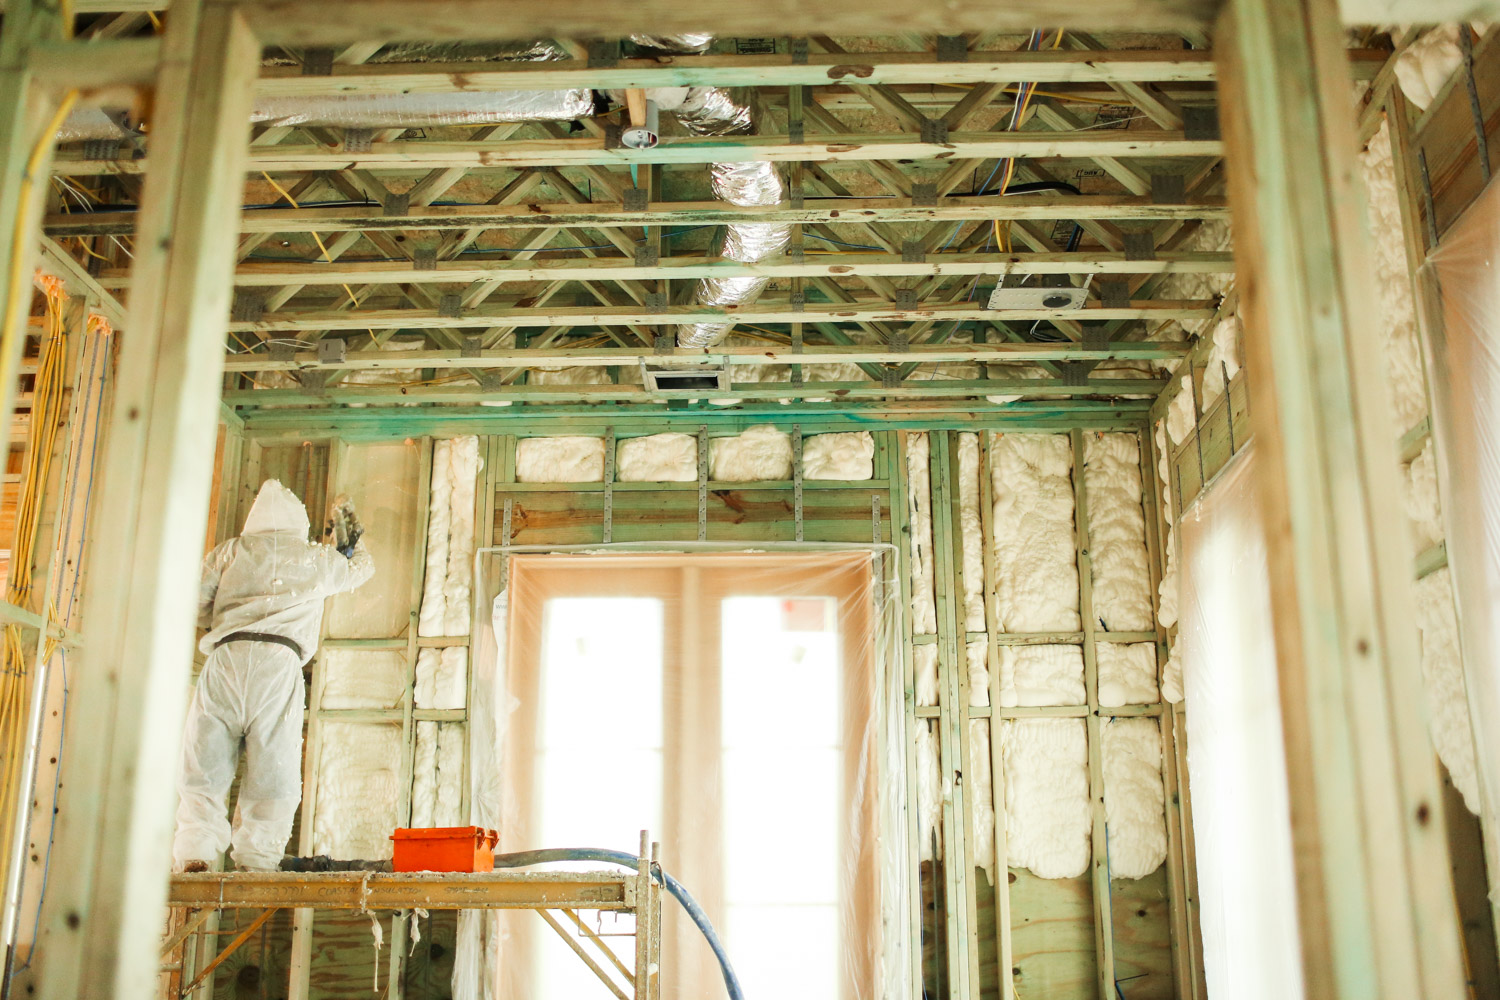 spray foam  Atlantic Spray foam  spray foam insulation spray foam insulation bluffton sc spray foam insulation cost spray foam insulation hilton head spray foam insulation savannah  Energy One